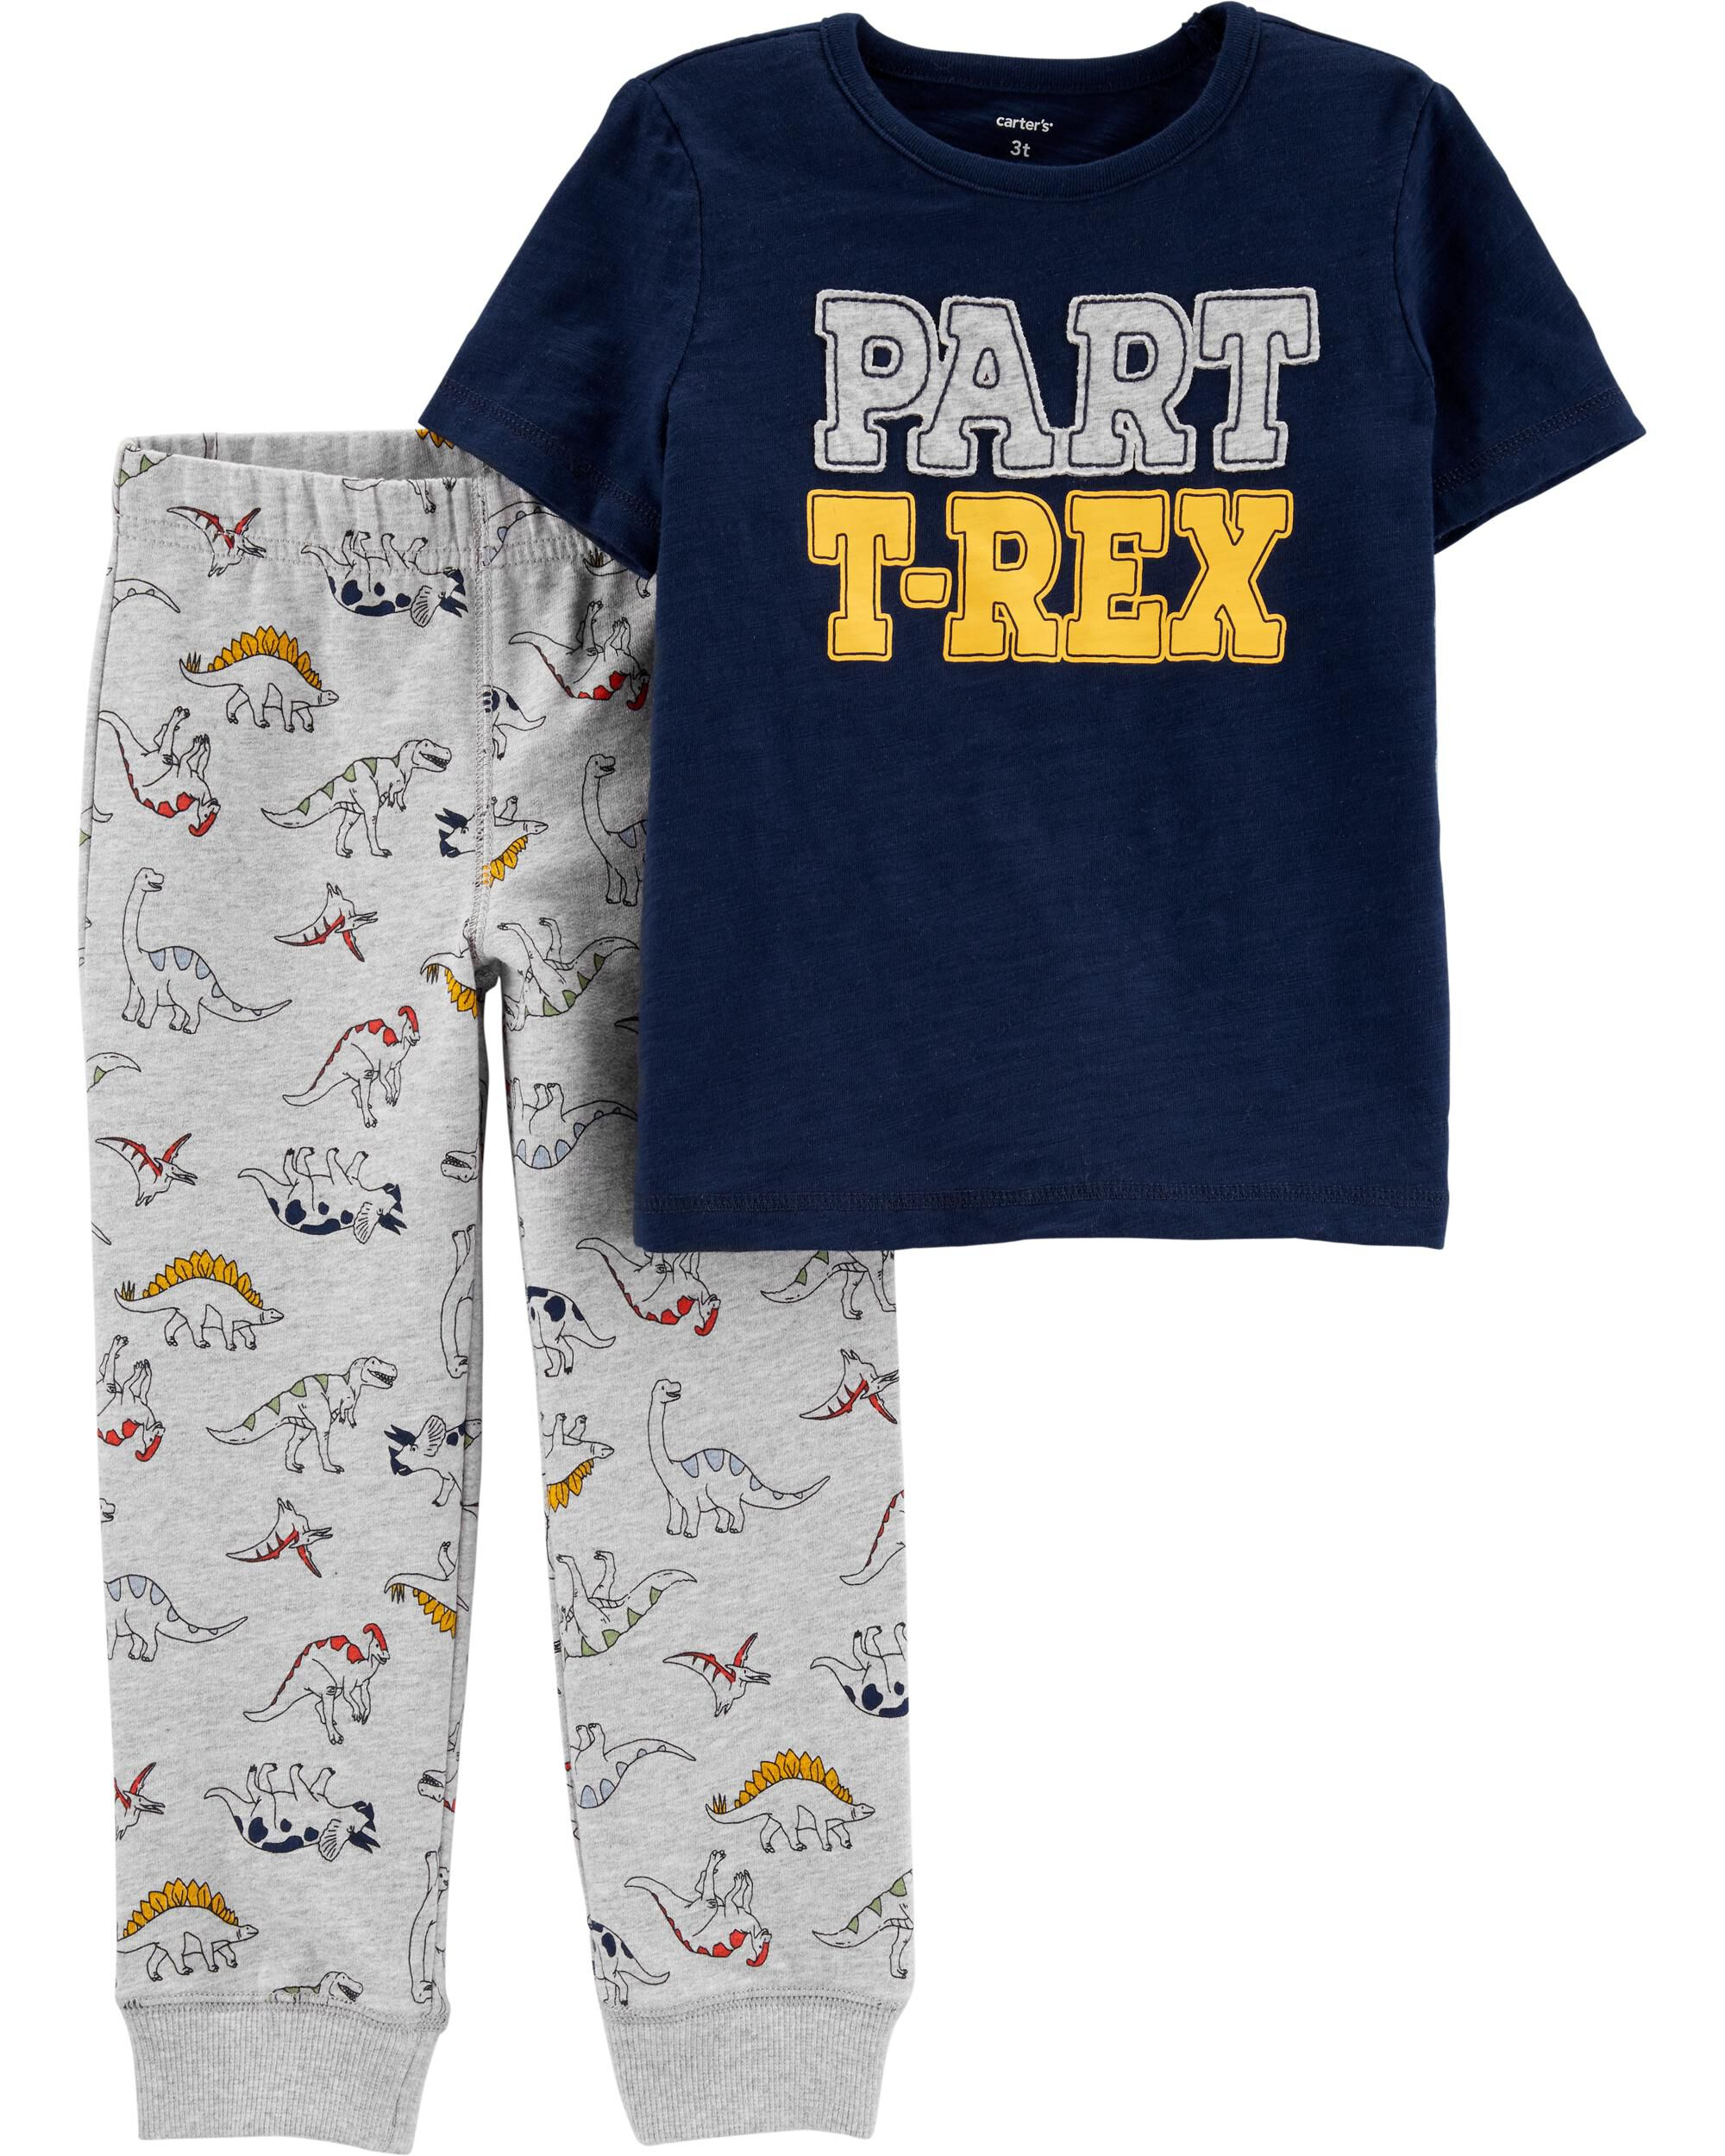 Newborn Baby Boys Top /& Joggers Set Dinosaur Outfit T-Shirt Trousers Printed Tee